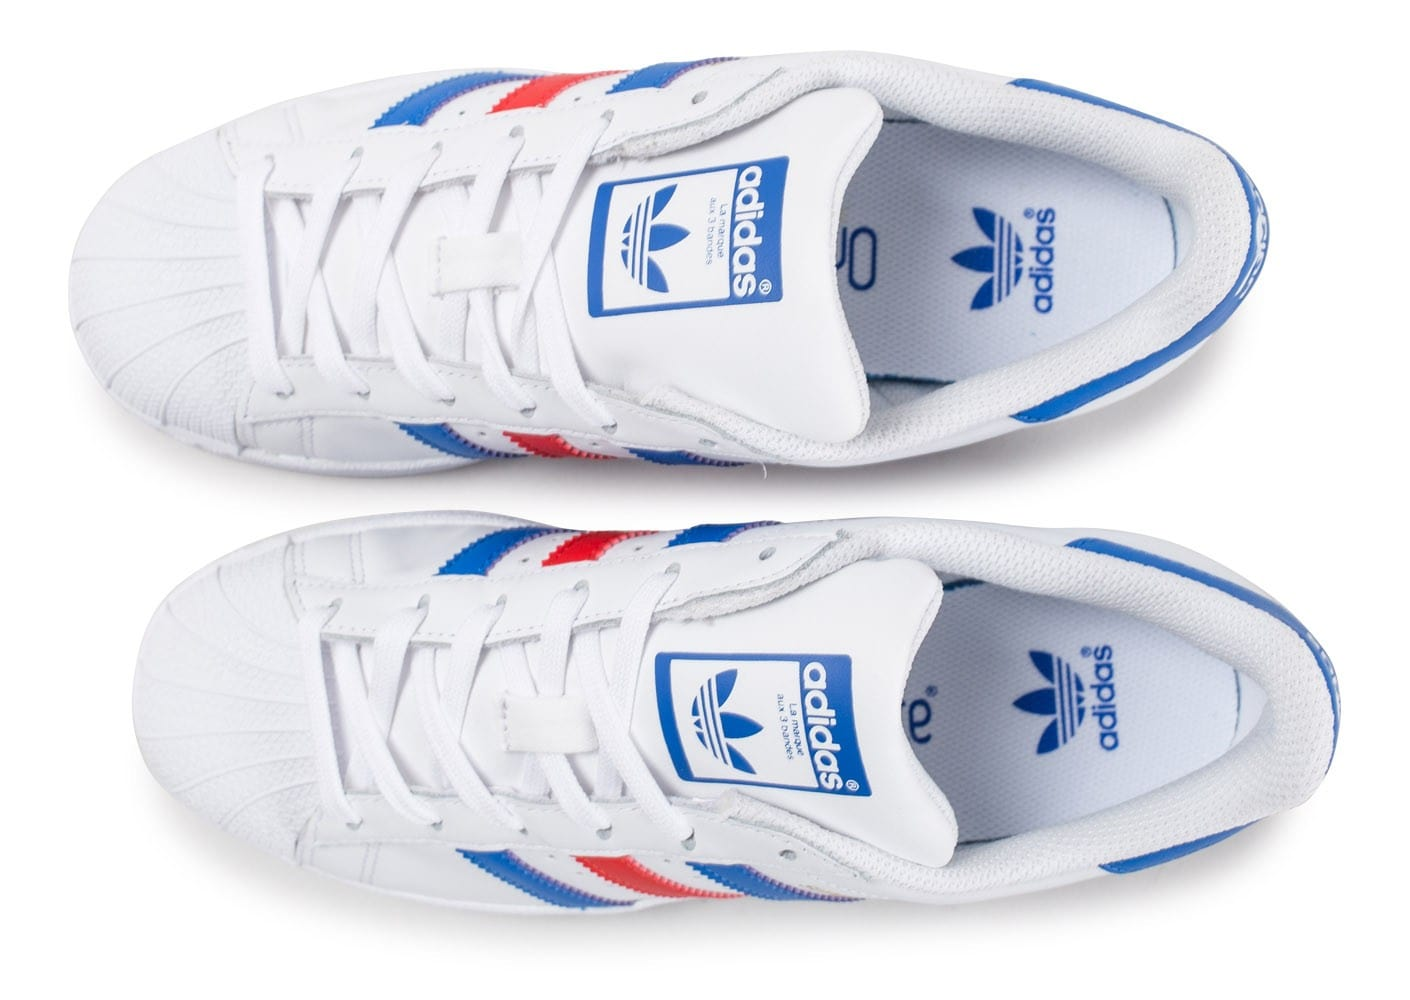 bleu Superstar Junior adidas adidas Chaussures rouge Chausport blanc qE8xCxwa